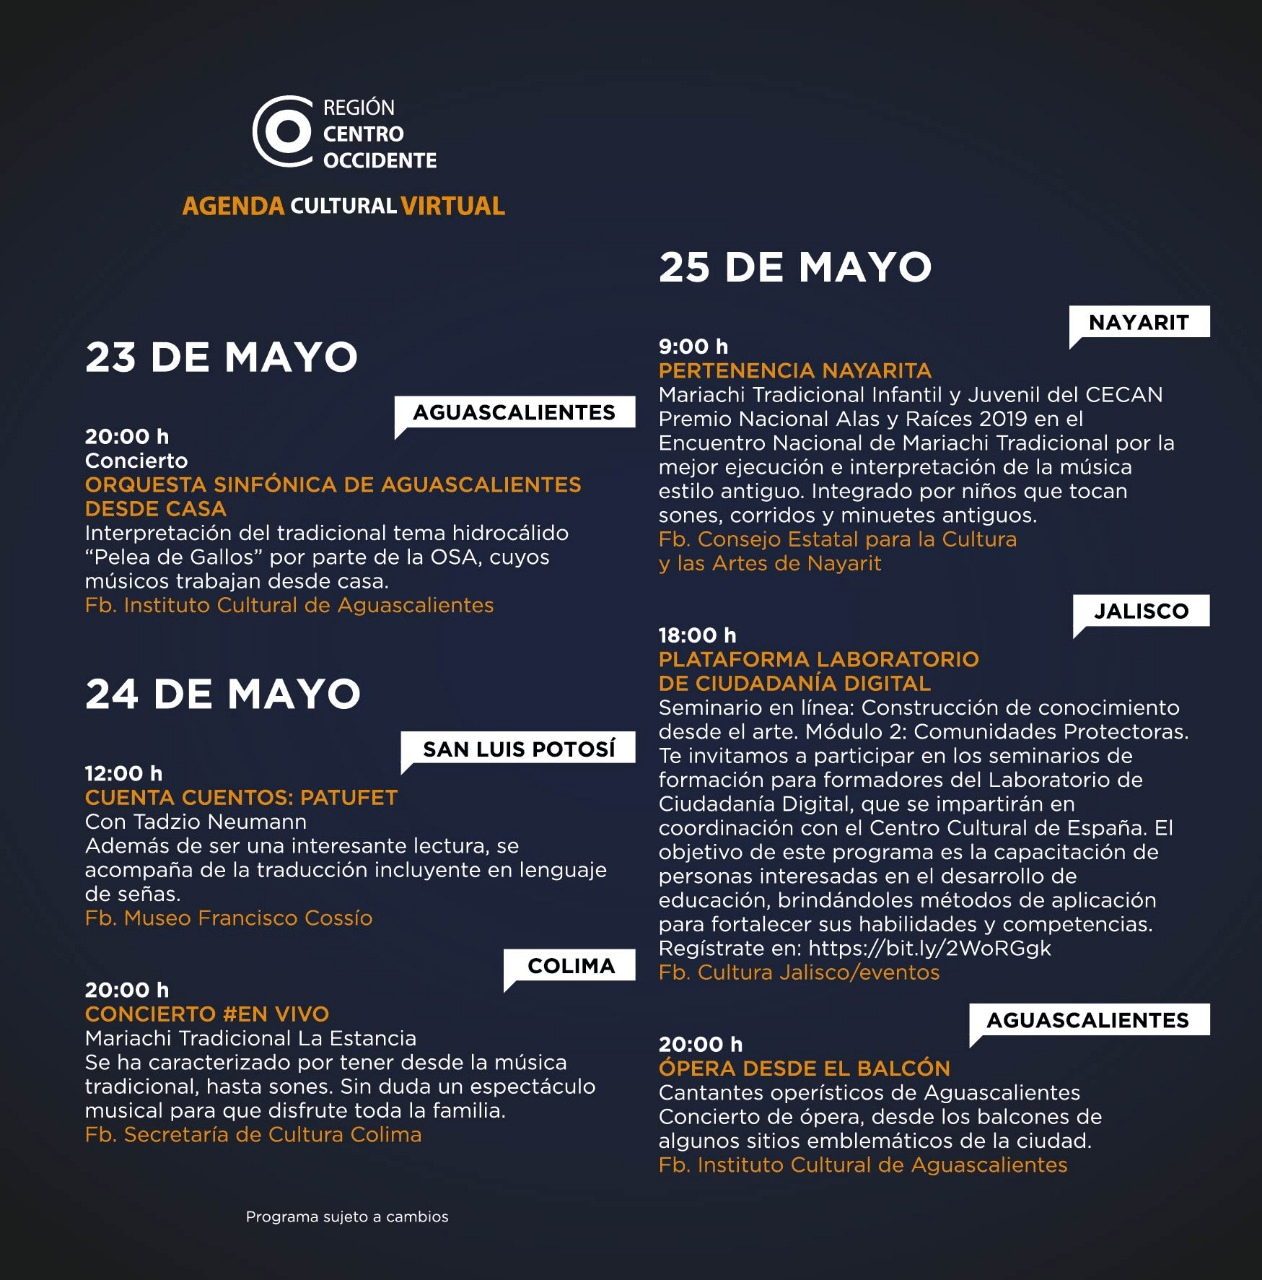 Agenda Centro Occidente 5